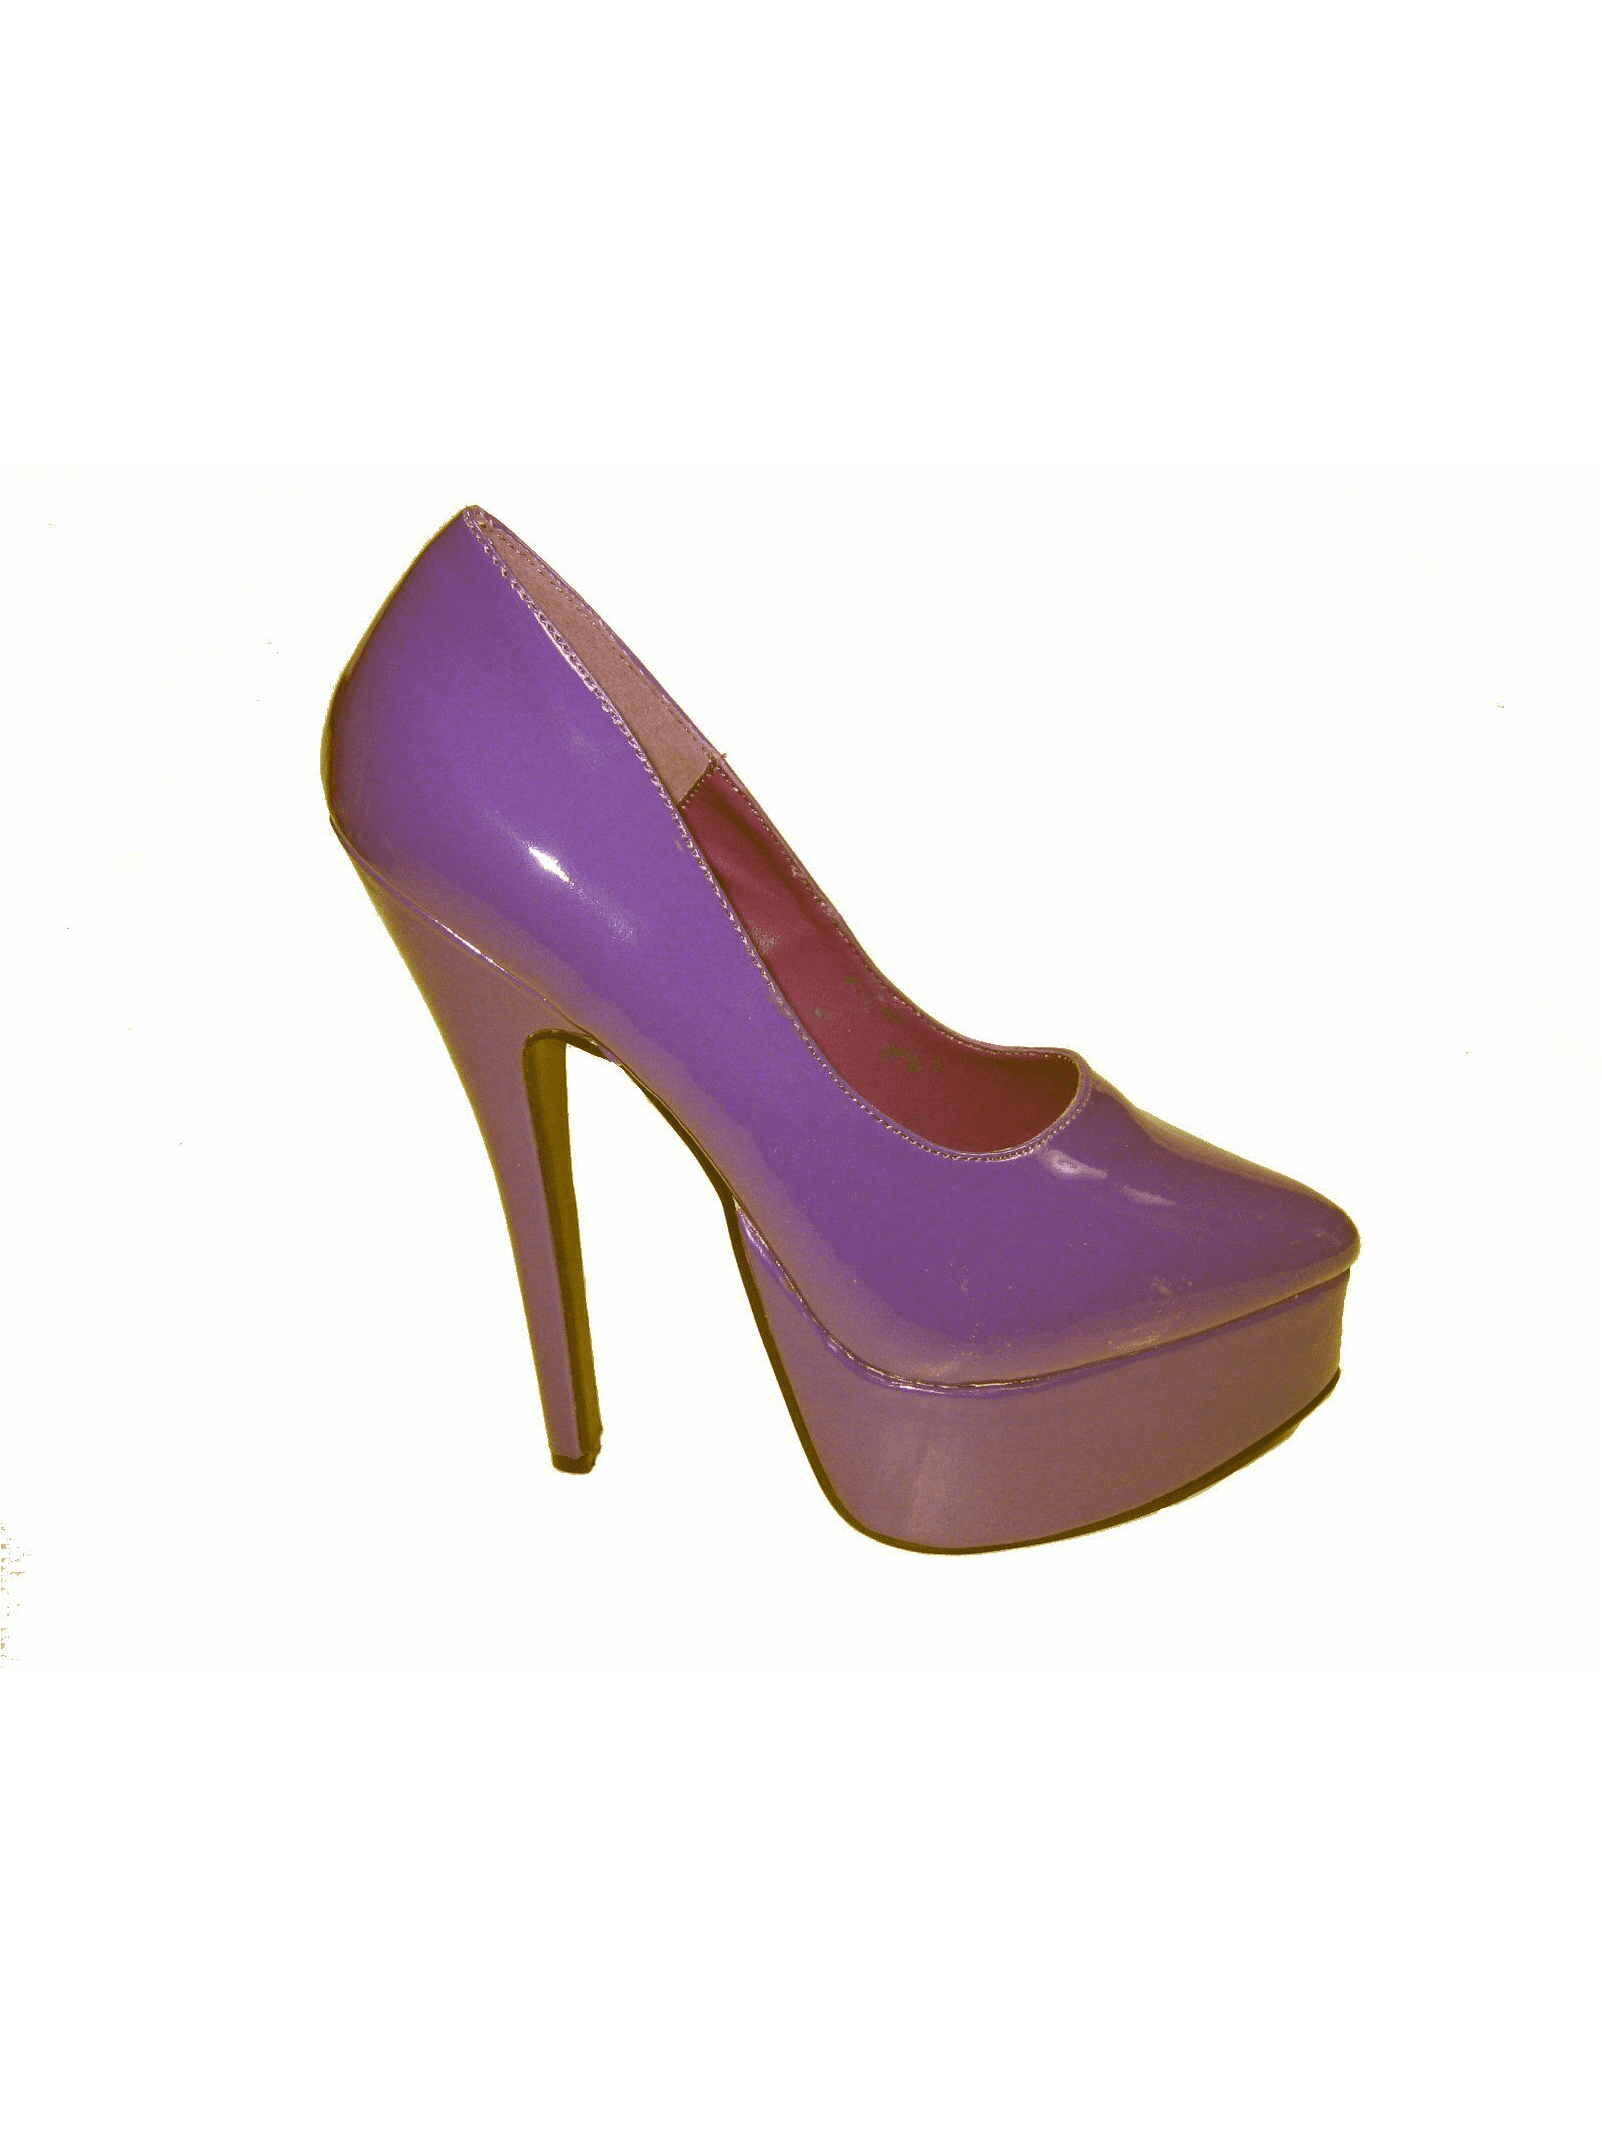 Style 8260 Women/'s 6 Inch High Heel Fetish Pump Shoes by Ellie Shoes